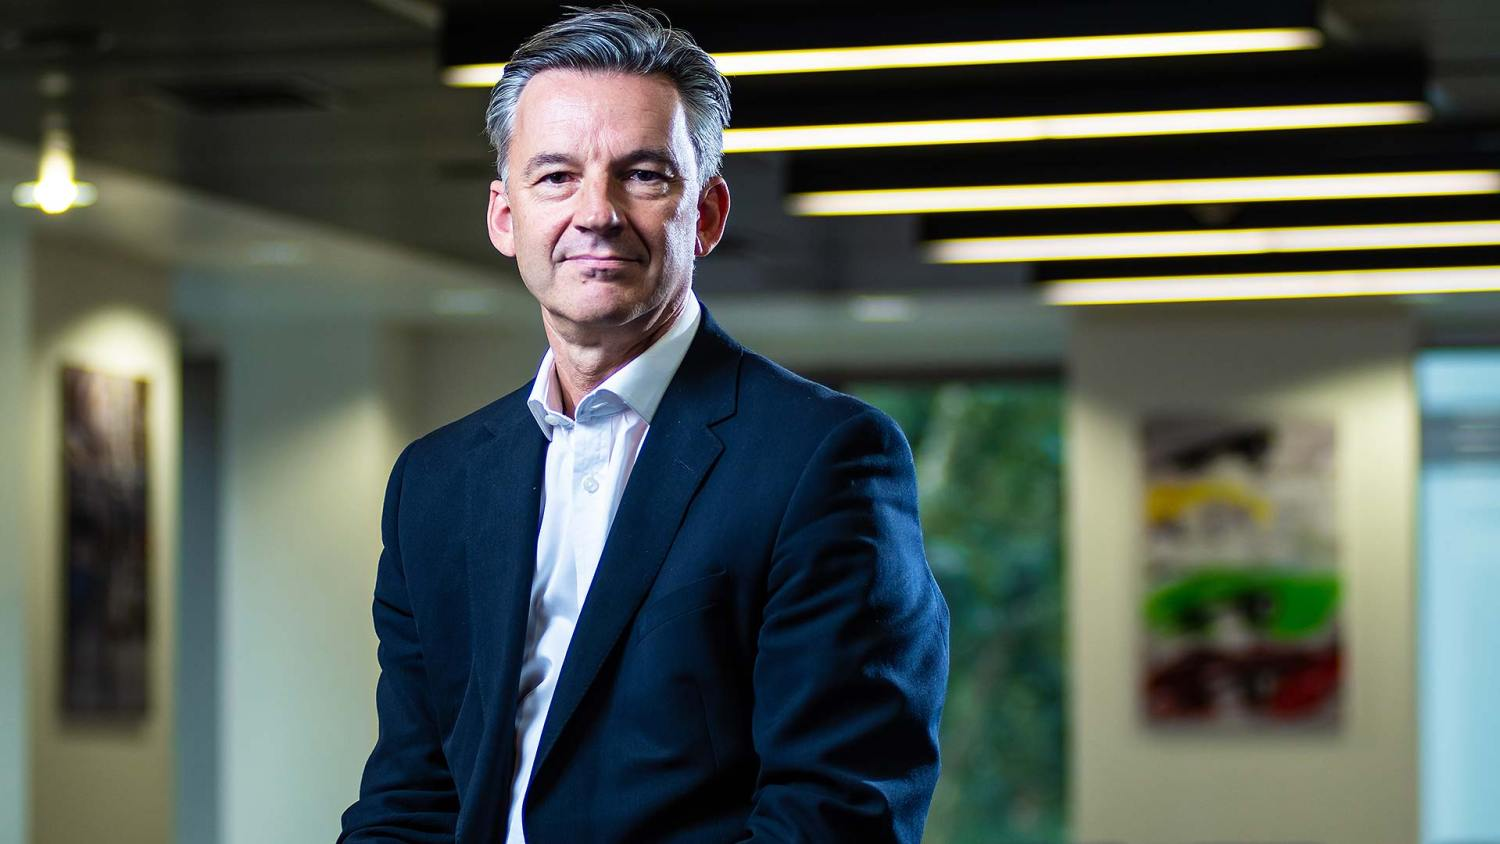 SMMT chief executive Mike Hawes